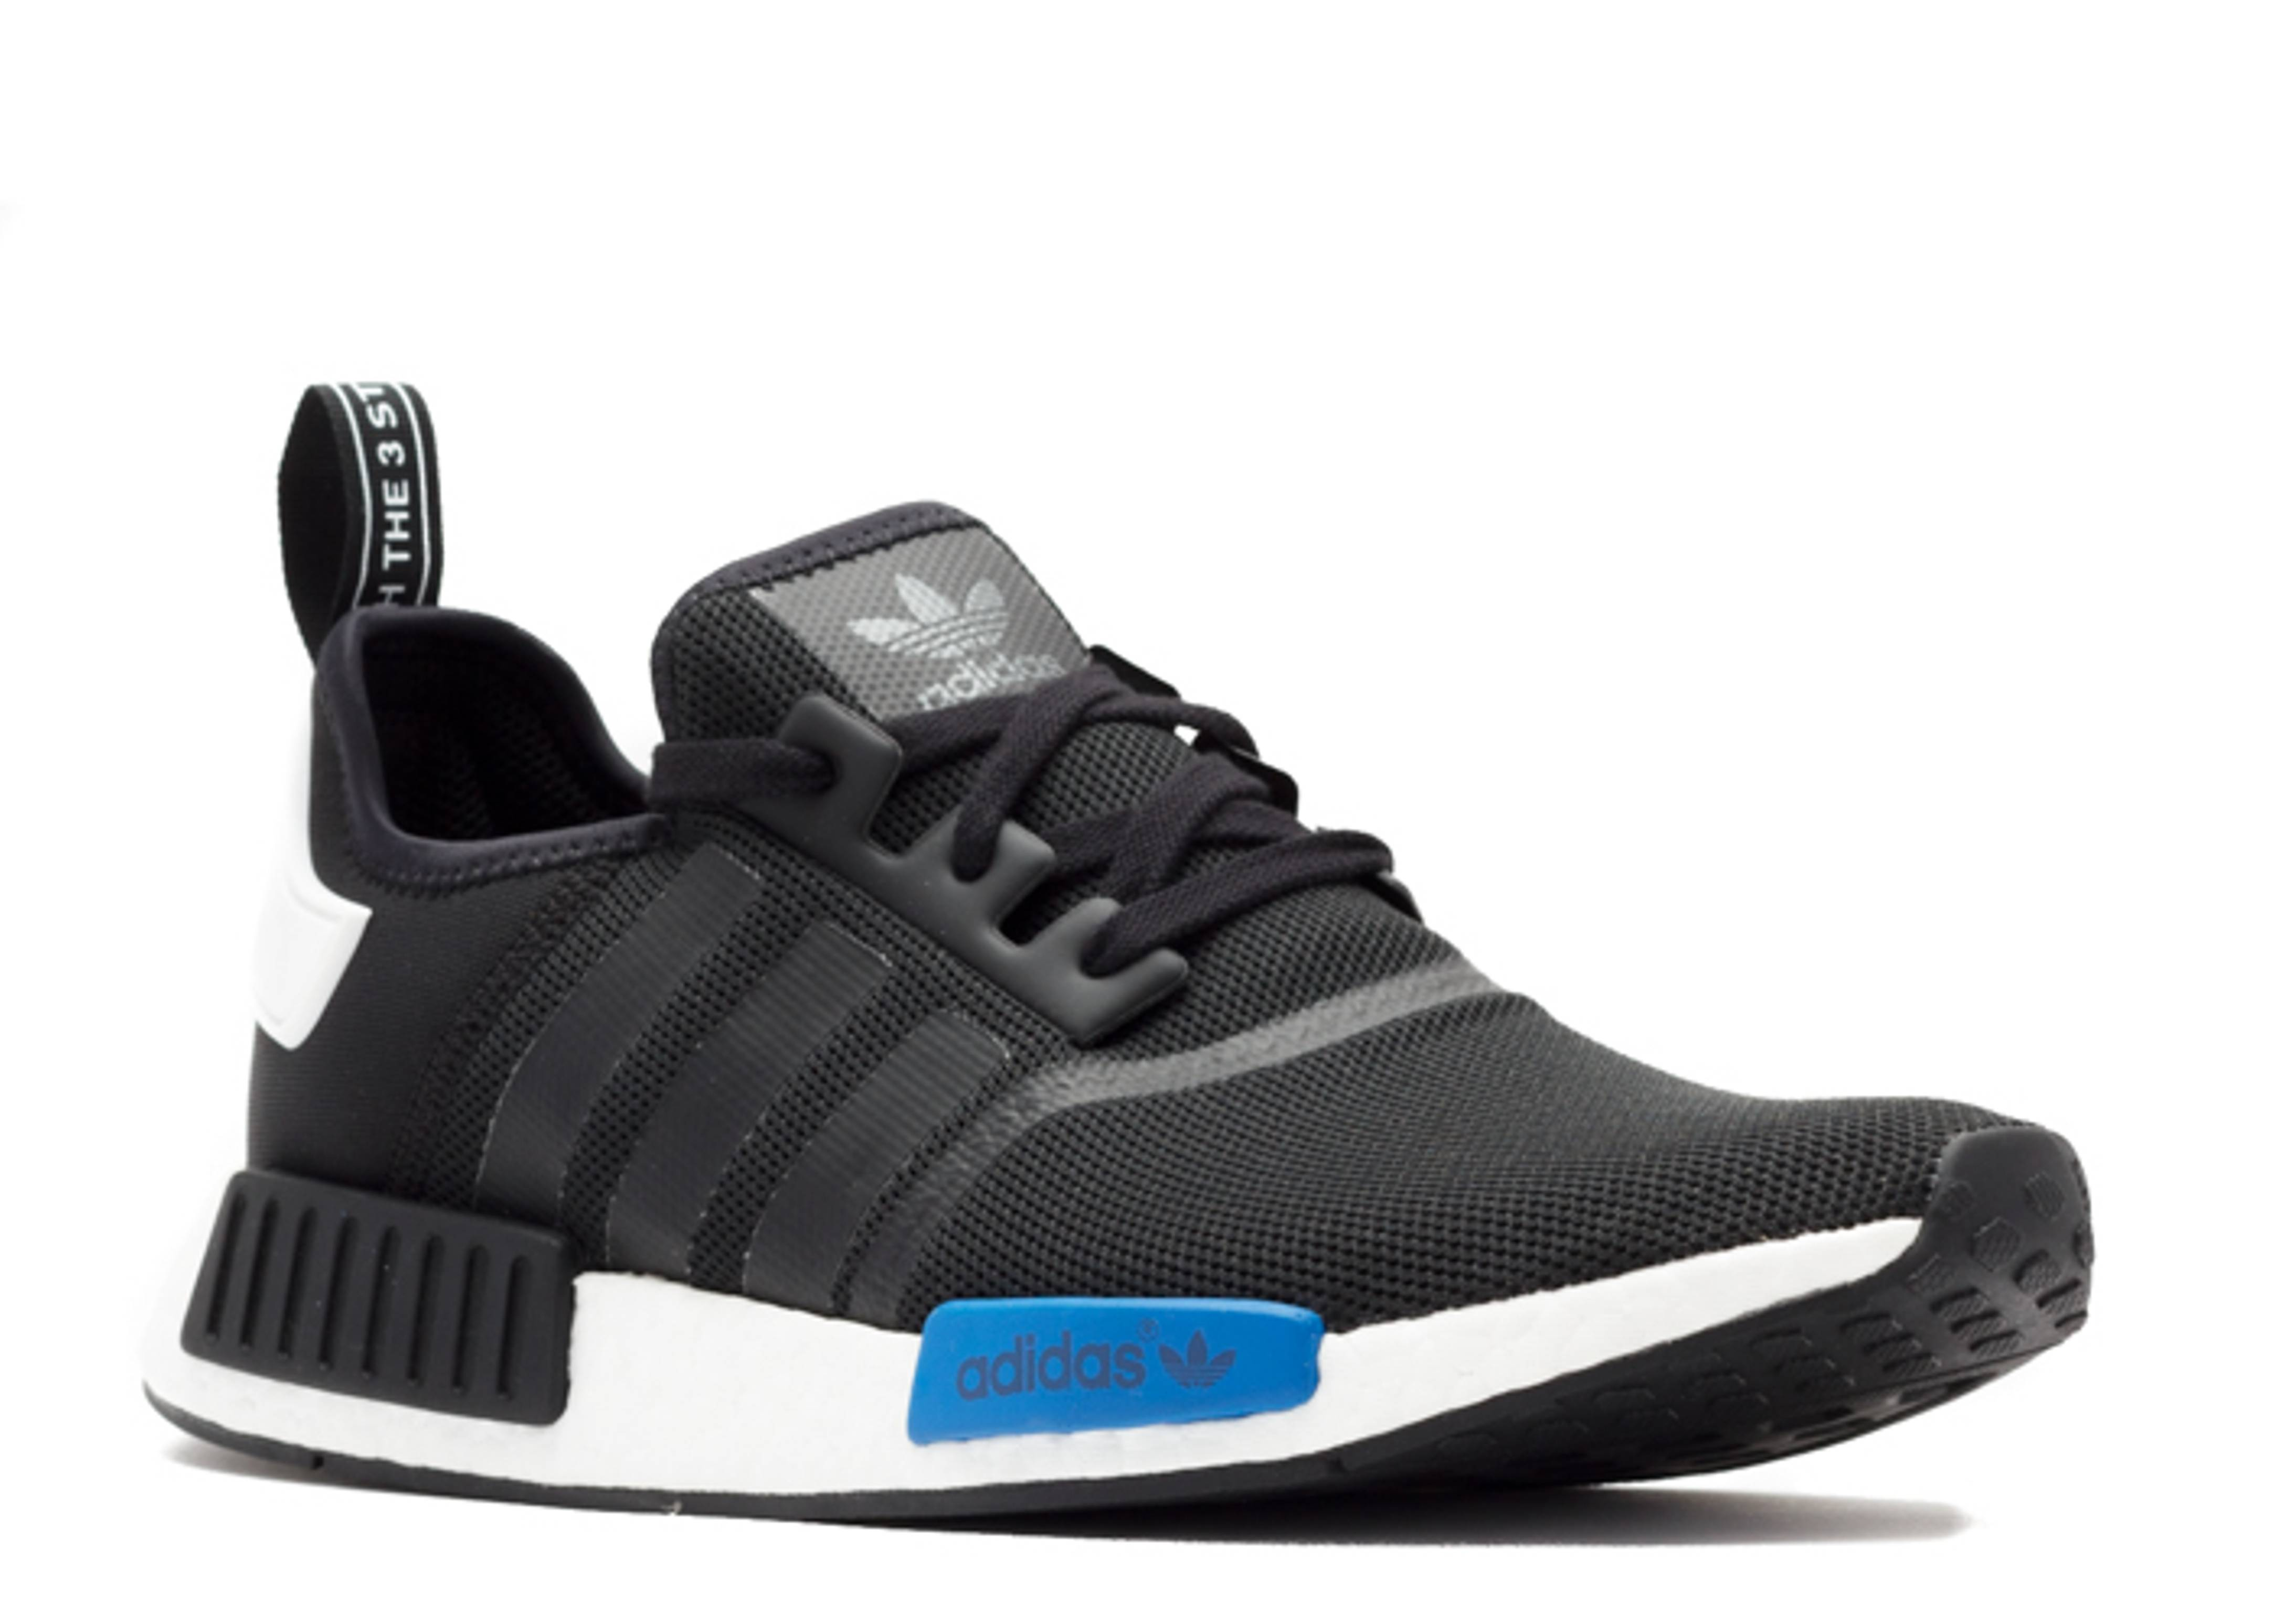 9eabe9b9c94e5 Adidas Nmd R1 Black Blue kenmore-cleaning.co.uk